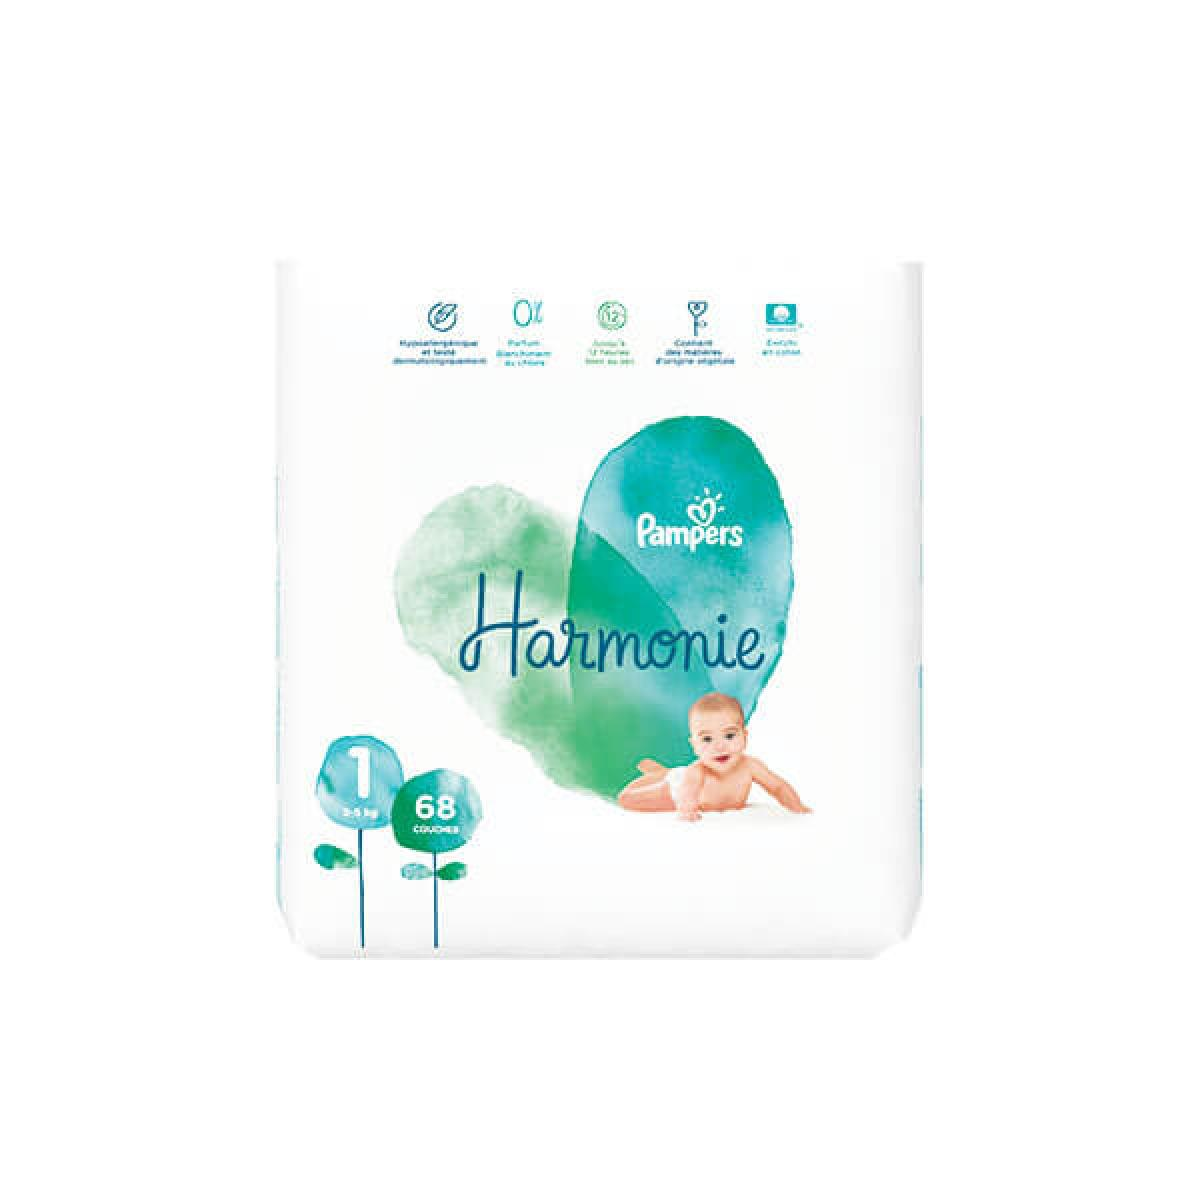 Pampers Harmonie Taille/1 68/Couches 2-5/kg